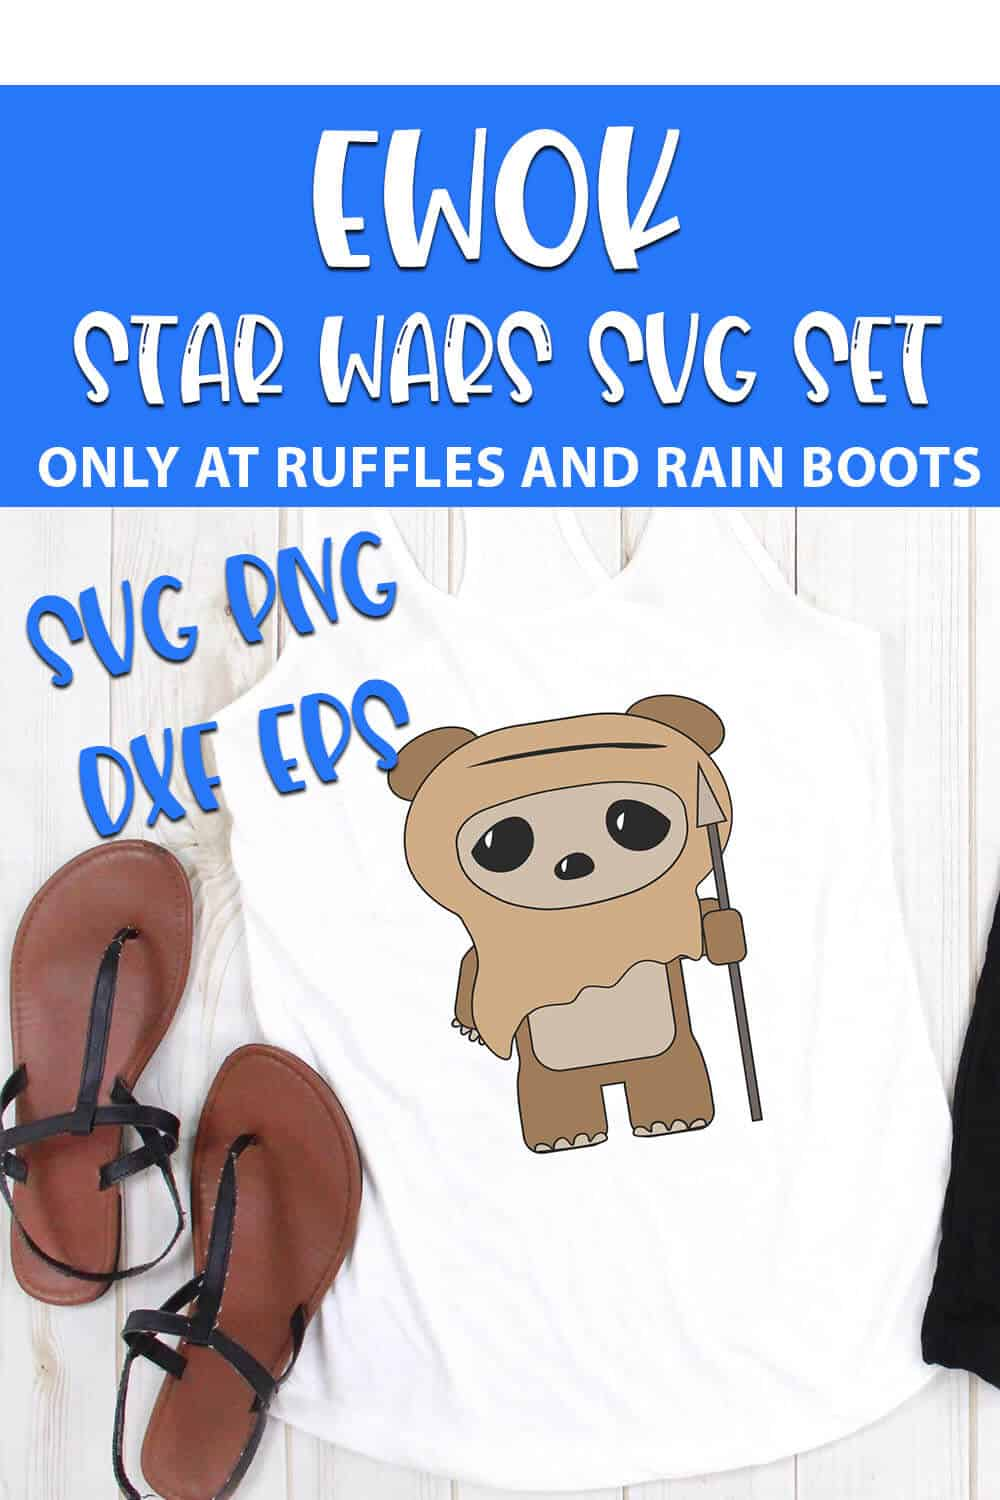 star wars inspired ewok svg set with text which reads ewok star wars svg set on a tank top